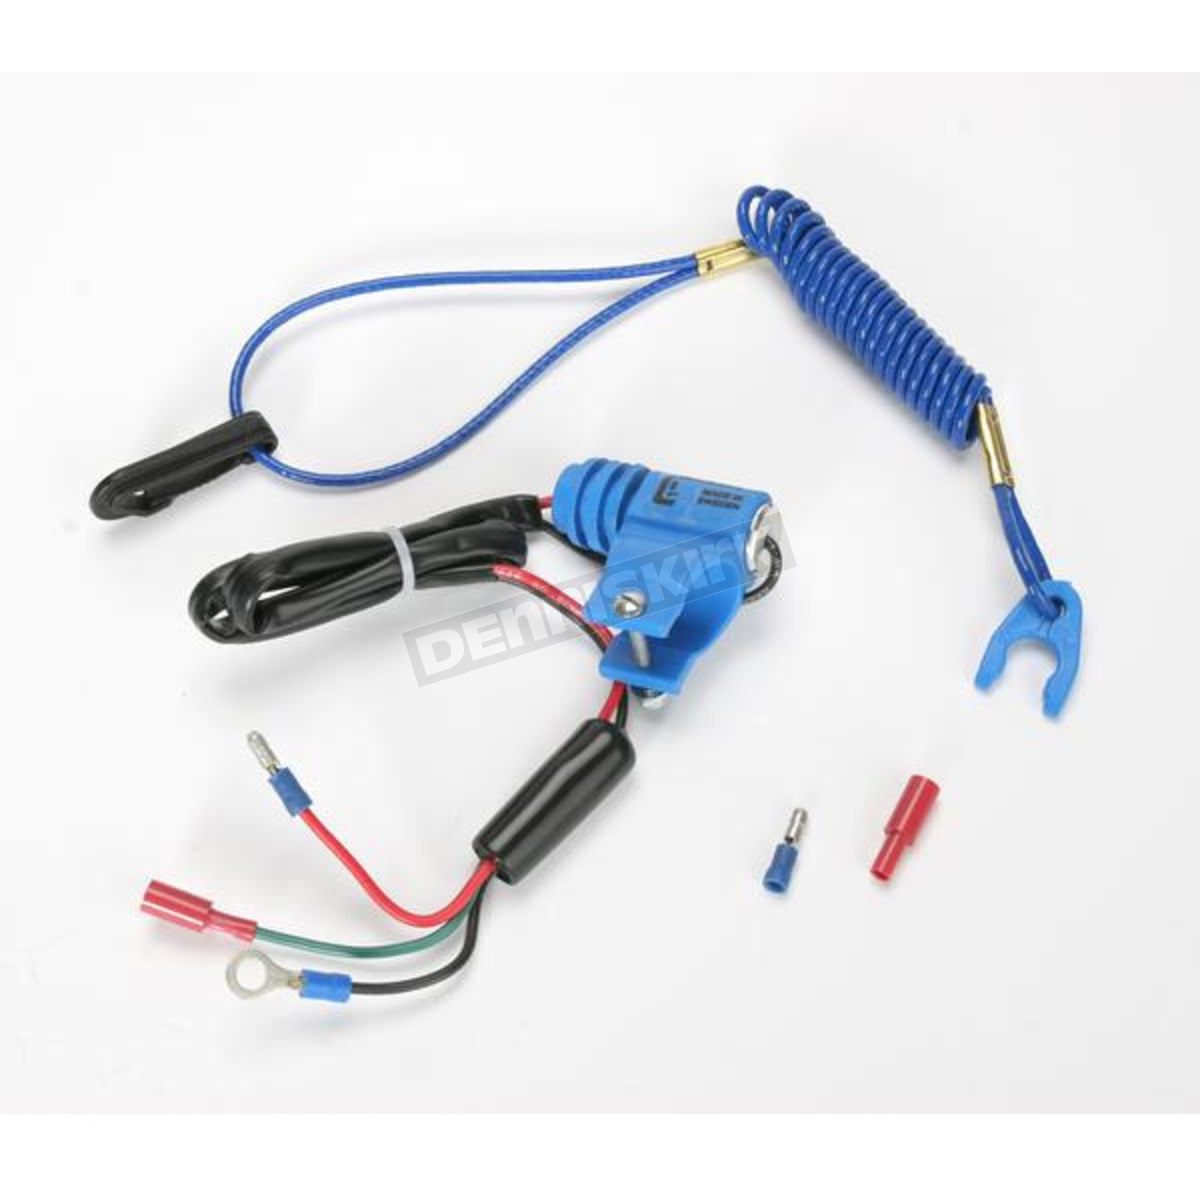 Gunnar Normally Closed Blue Tether Kill Switch Gk1012nc Dirt Bike Remote Control Atv Wiring